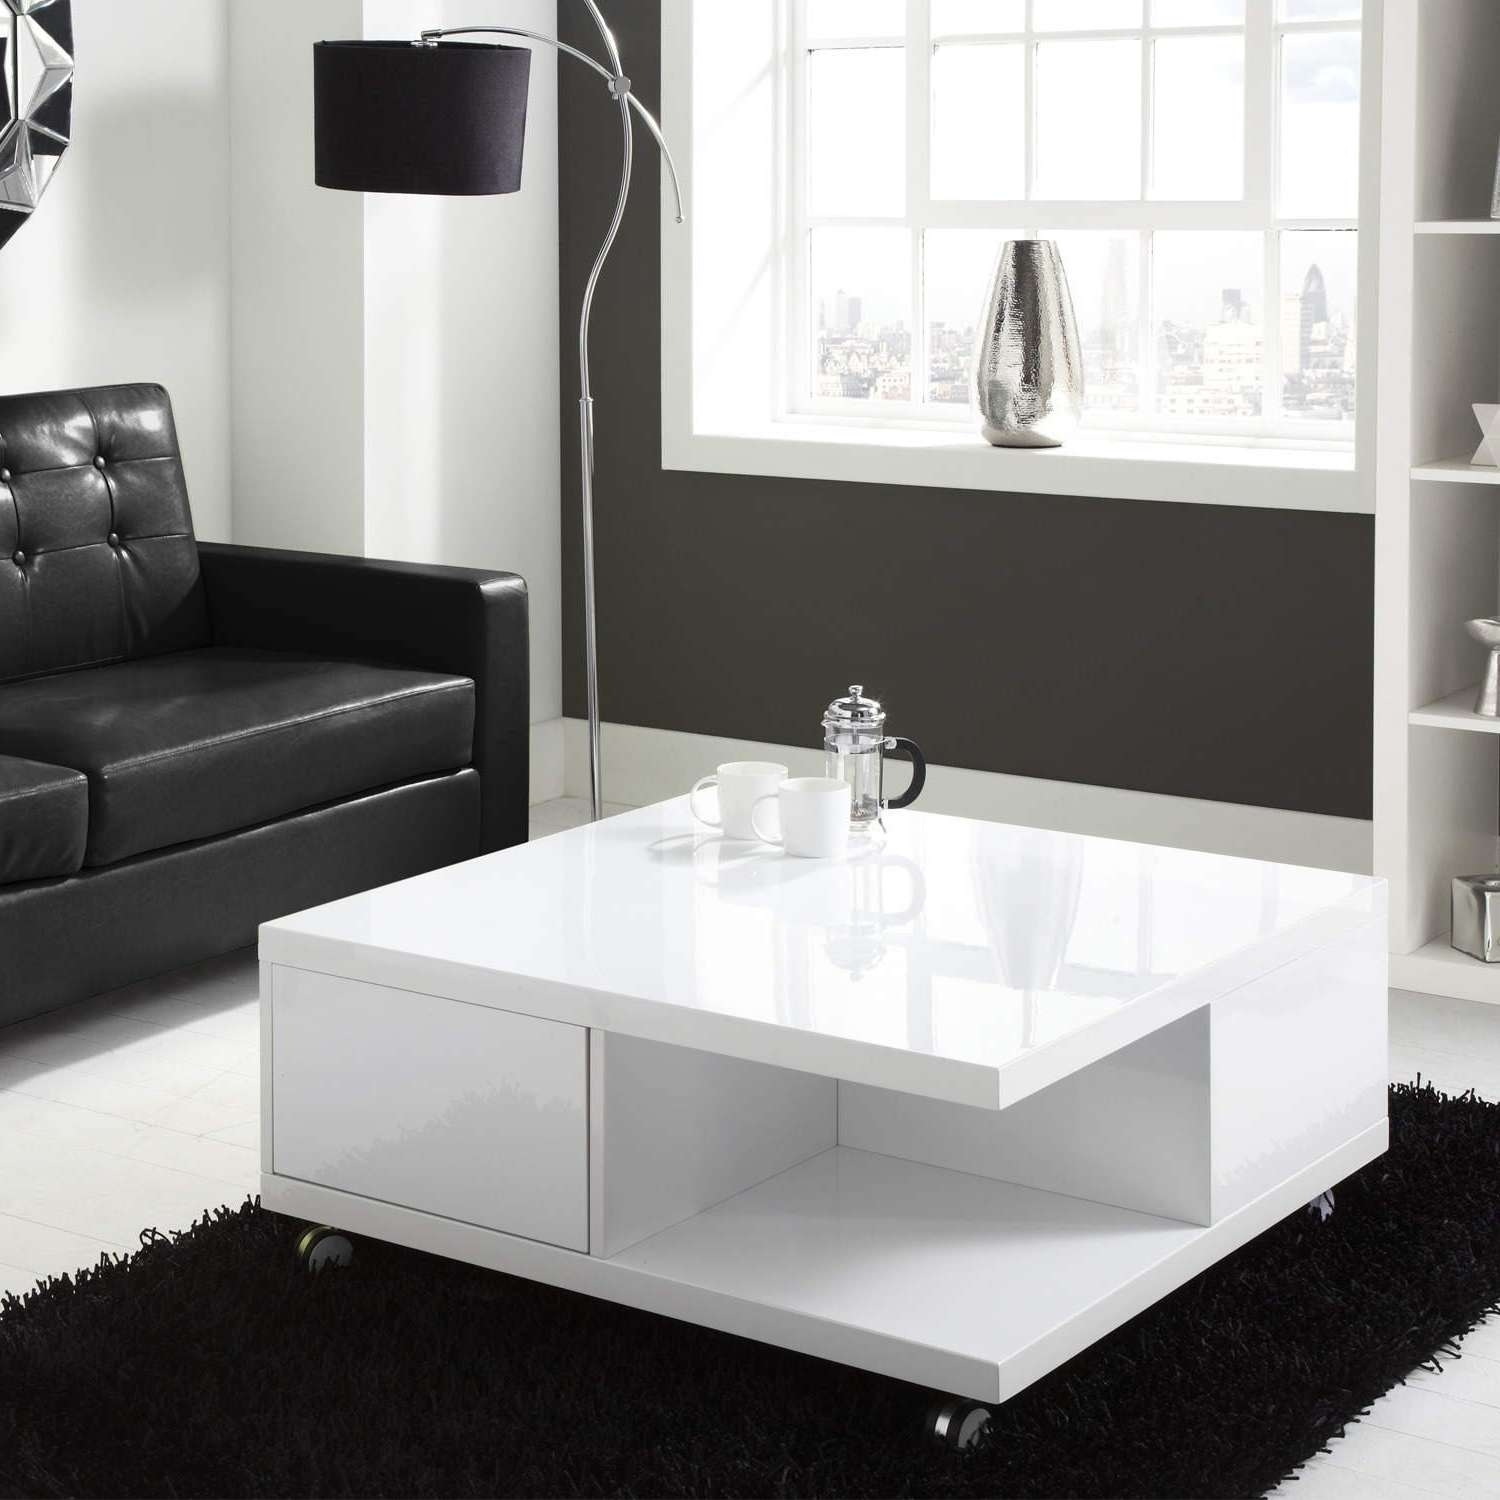 Coffee Tables : Storage Table High Gloss White Coffee With Drawers In Most Recently Released High Gloss Coffee Tables (View 15 of 20)